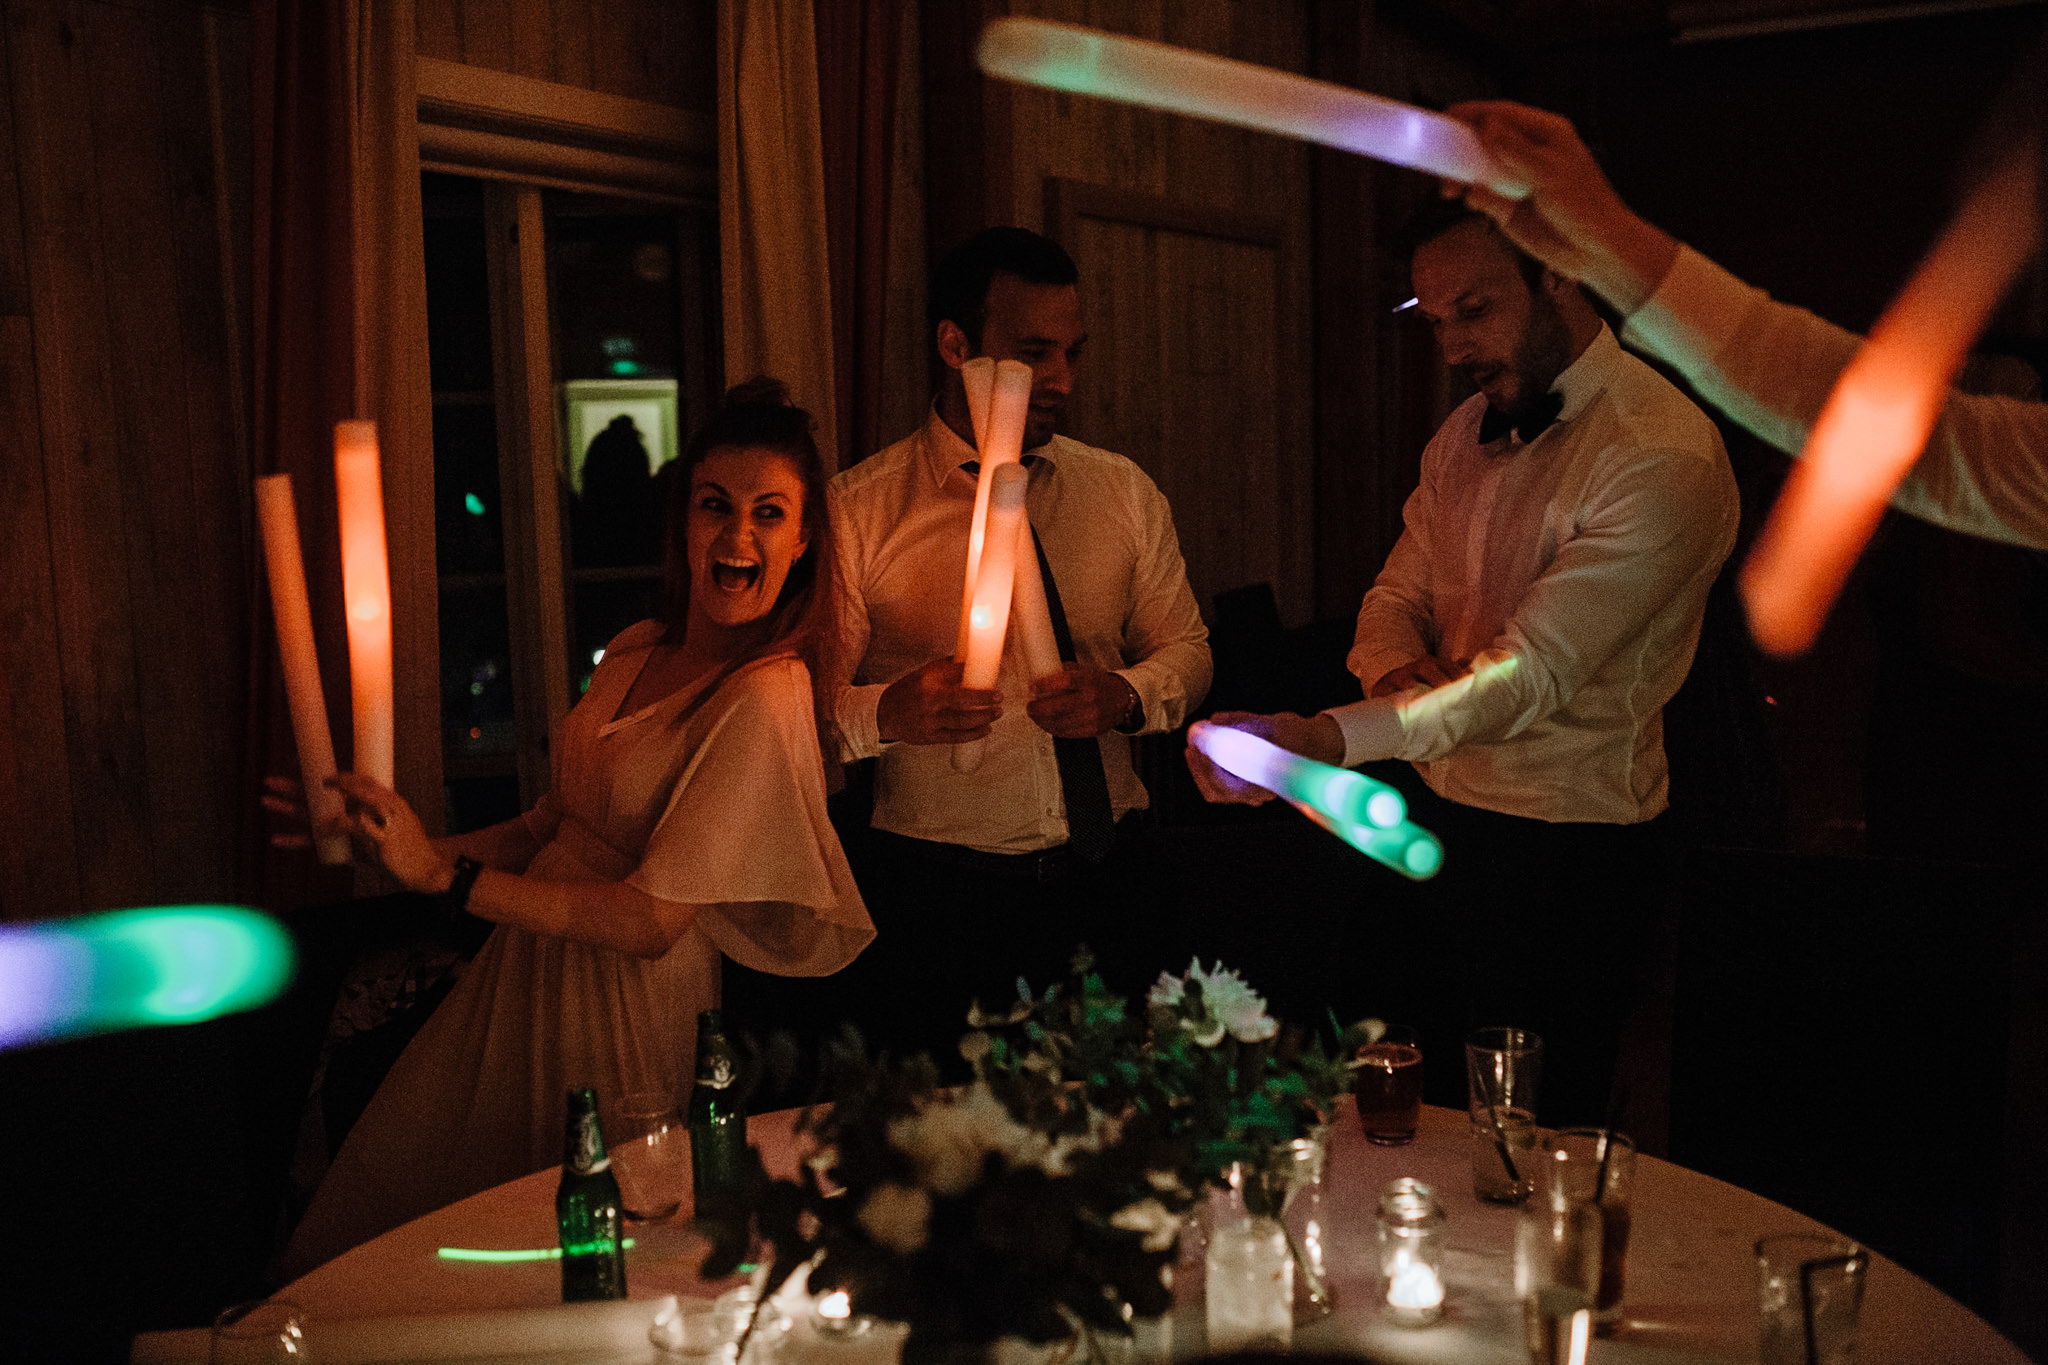 glow sticks fun wedding entertainment ideas